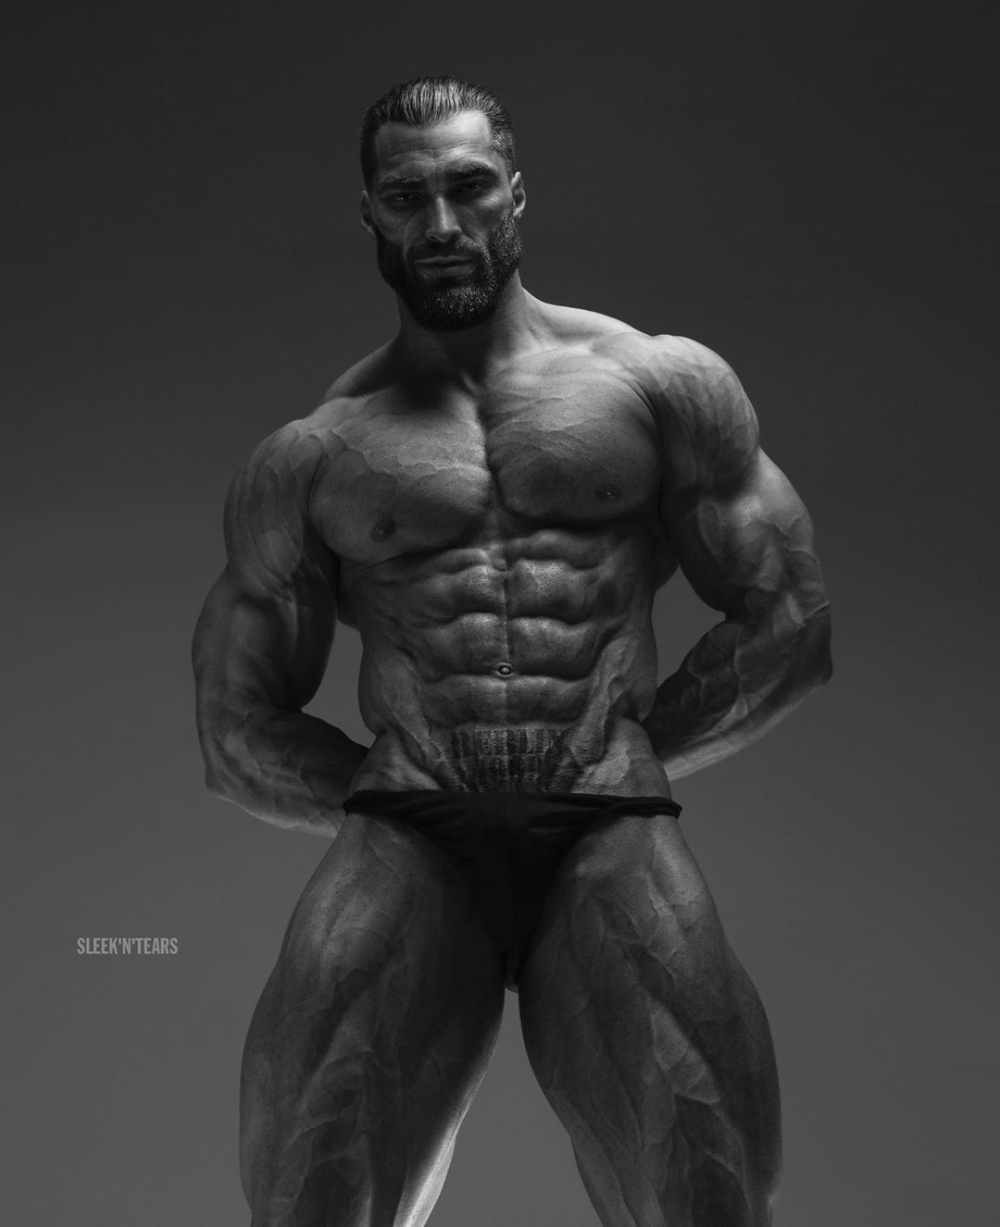 Callous Goth On Twitter Greek Statue Muscle Structure Statue His name is ernest khalimov, most probably a chechen immigrant in germany. callous goth on twitter greek statue